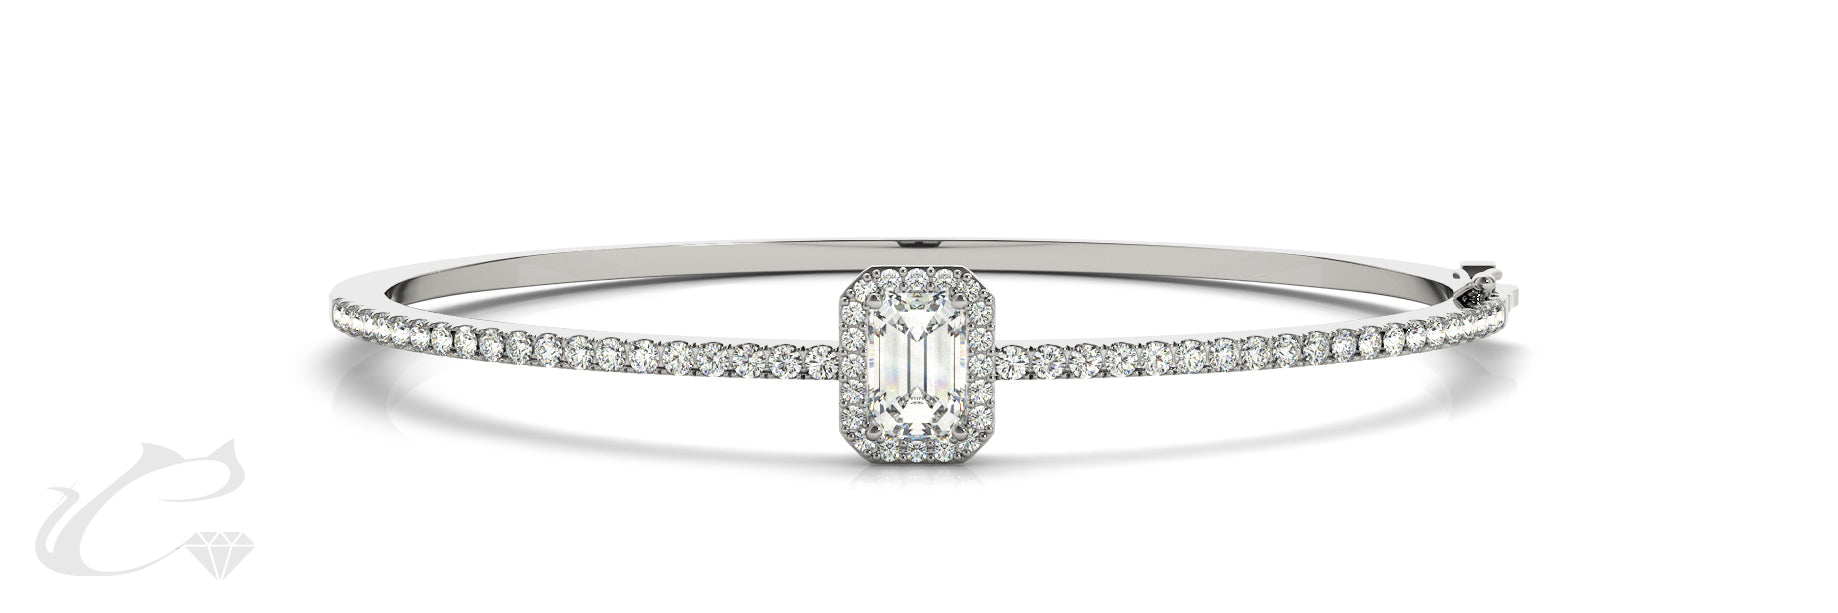 Emerald Cut Diamond Bangle